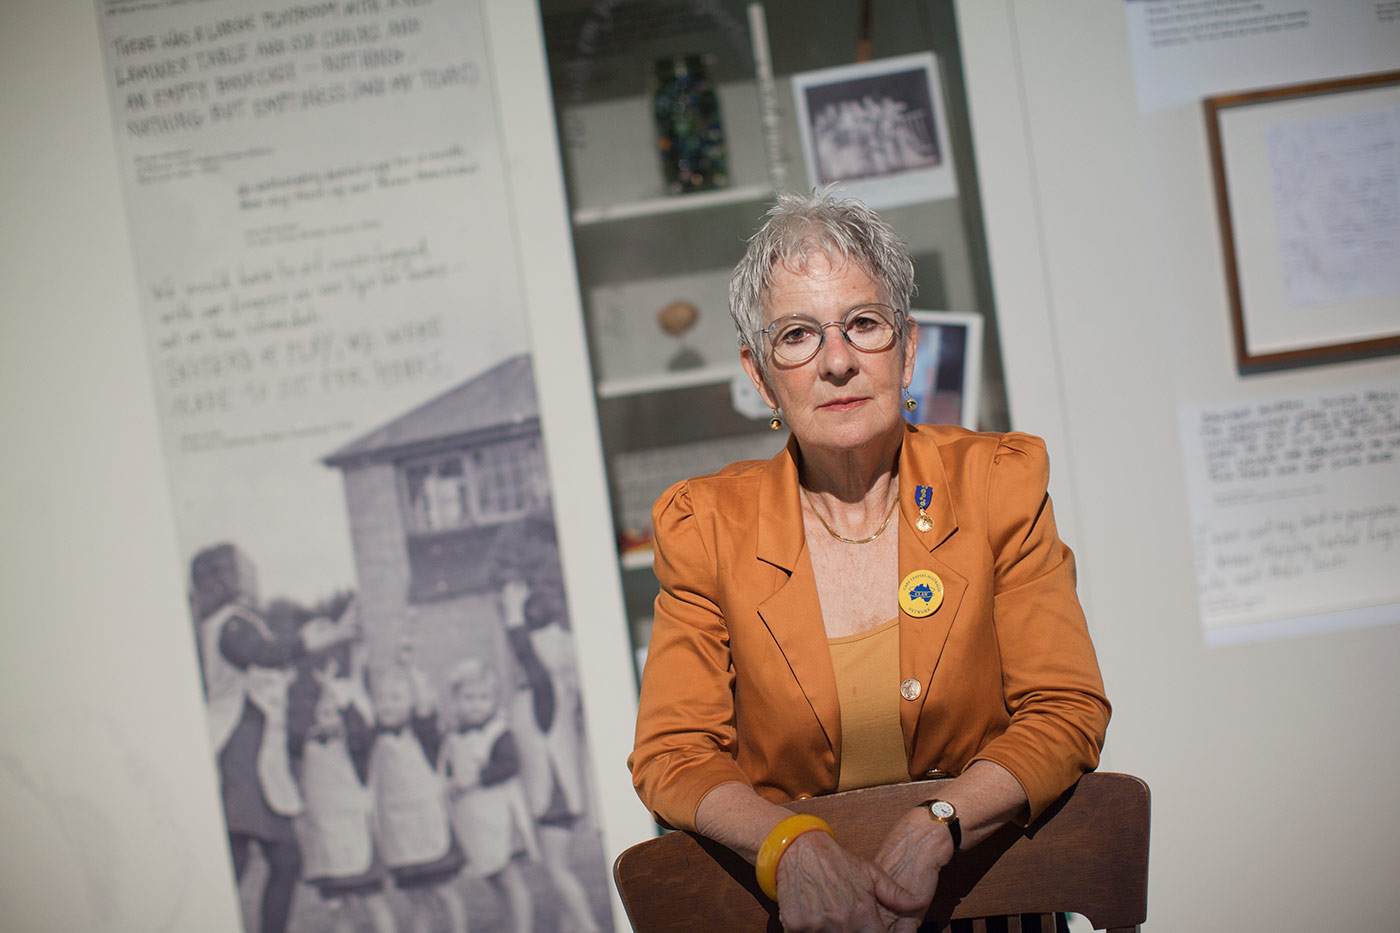 Colour photo showing a woman standing behind a wooden chair in a gallery space, with a large black and white photo and various objects visible on the wall behind. - click to view larger image